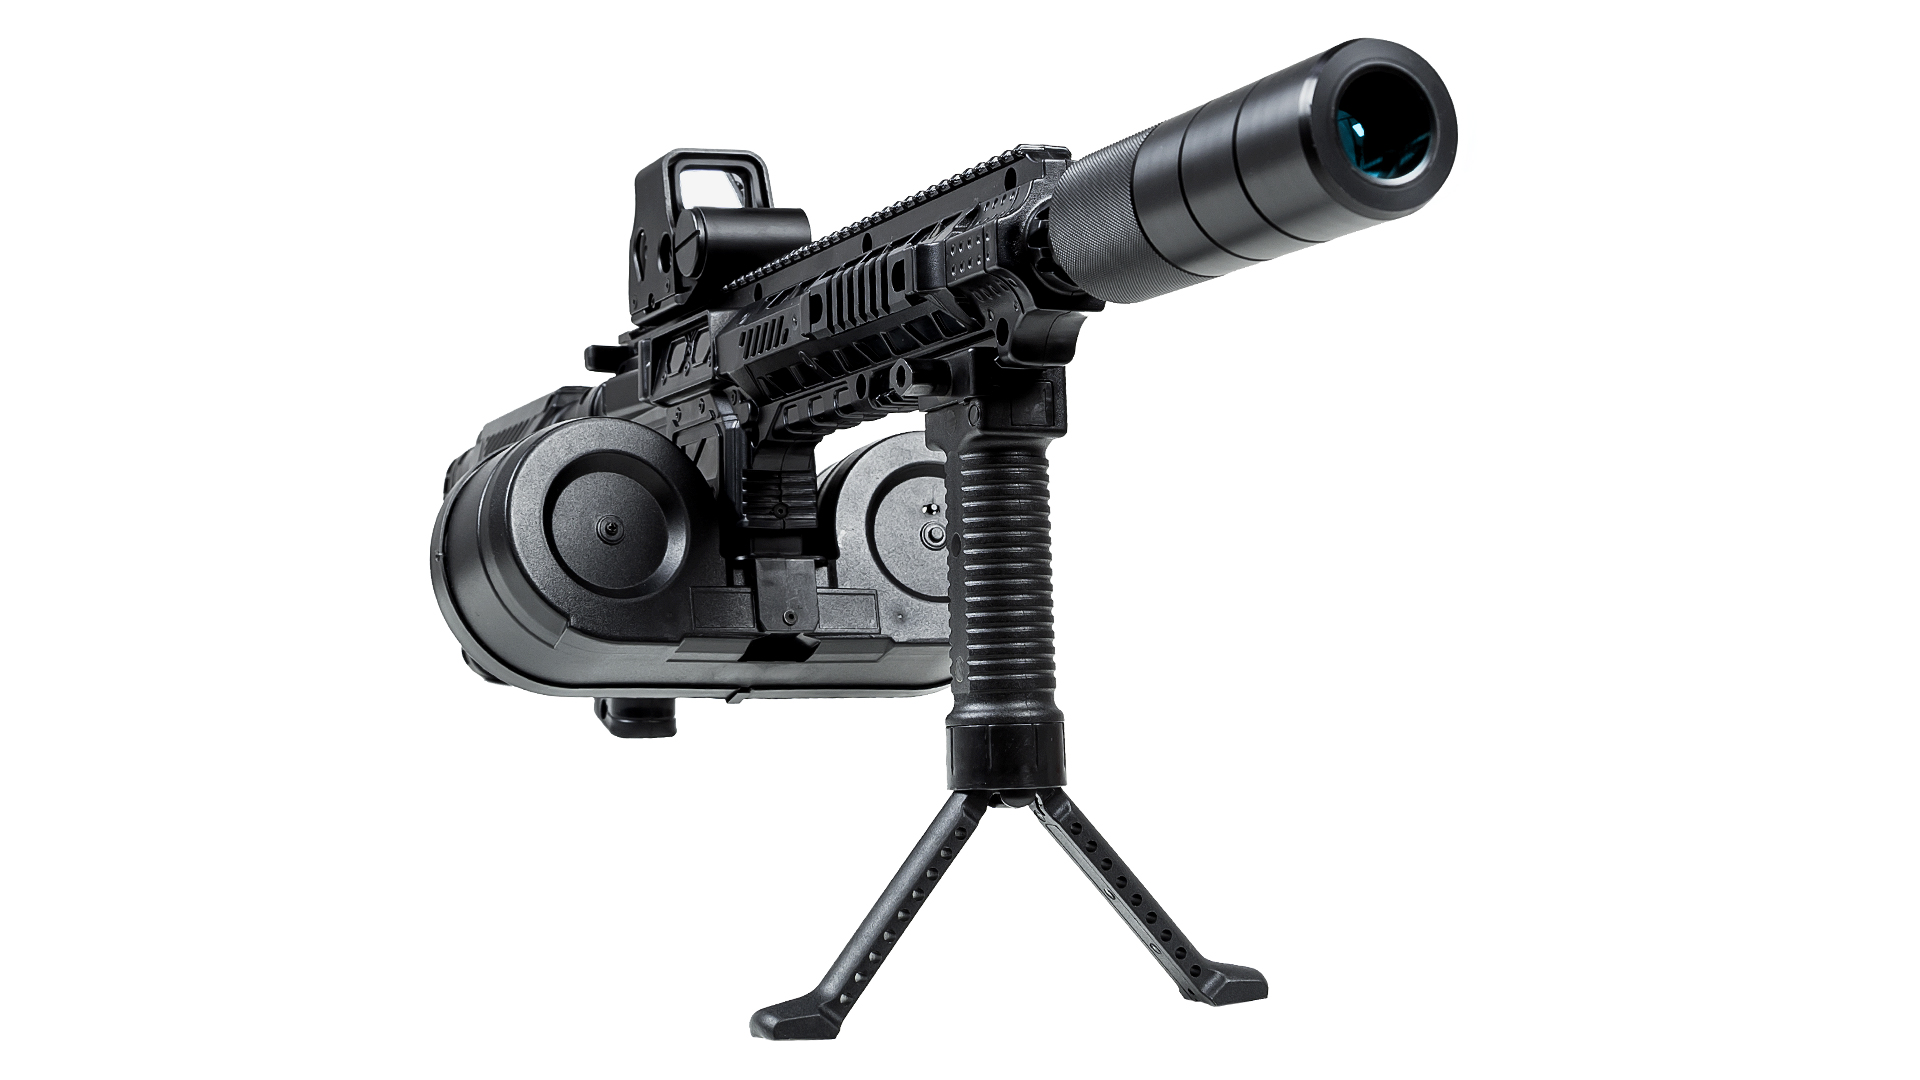 Machine gun for Laser tag (outdoor tactical games)